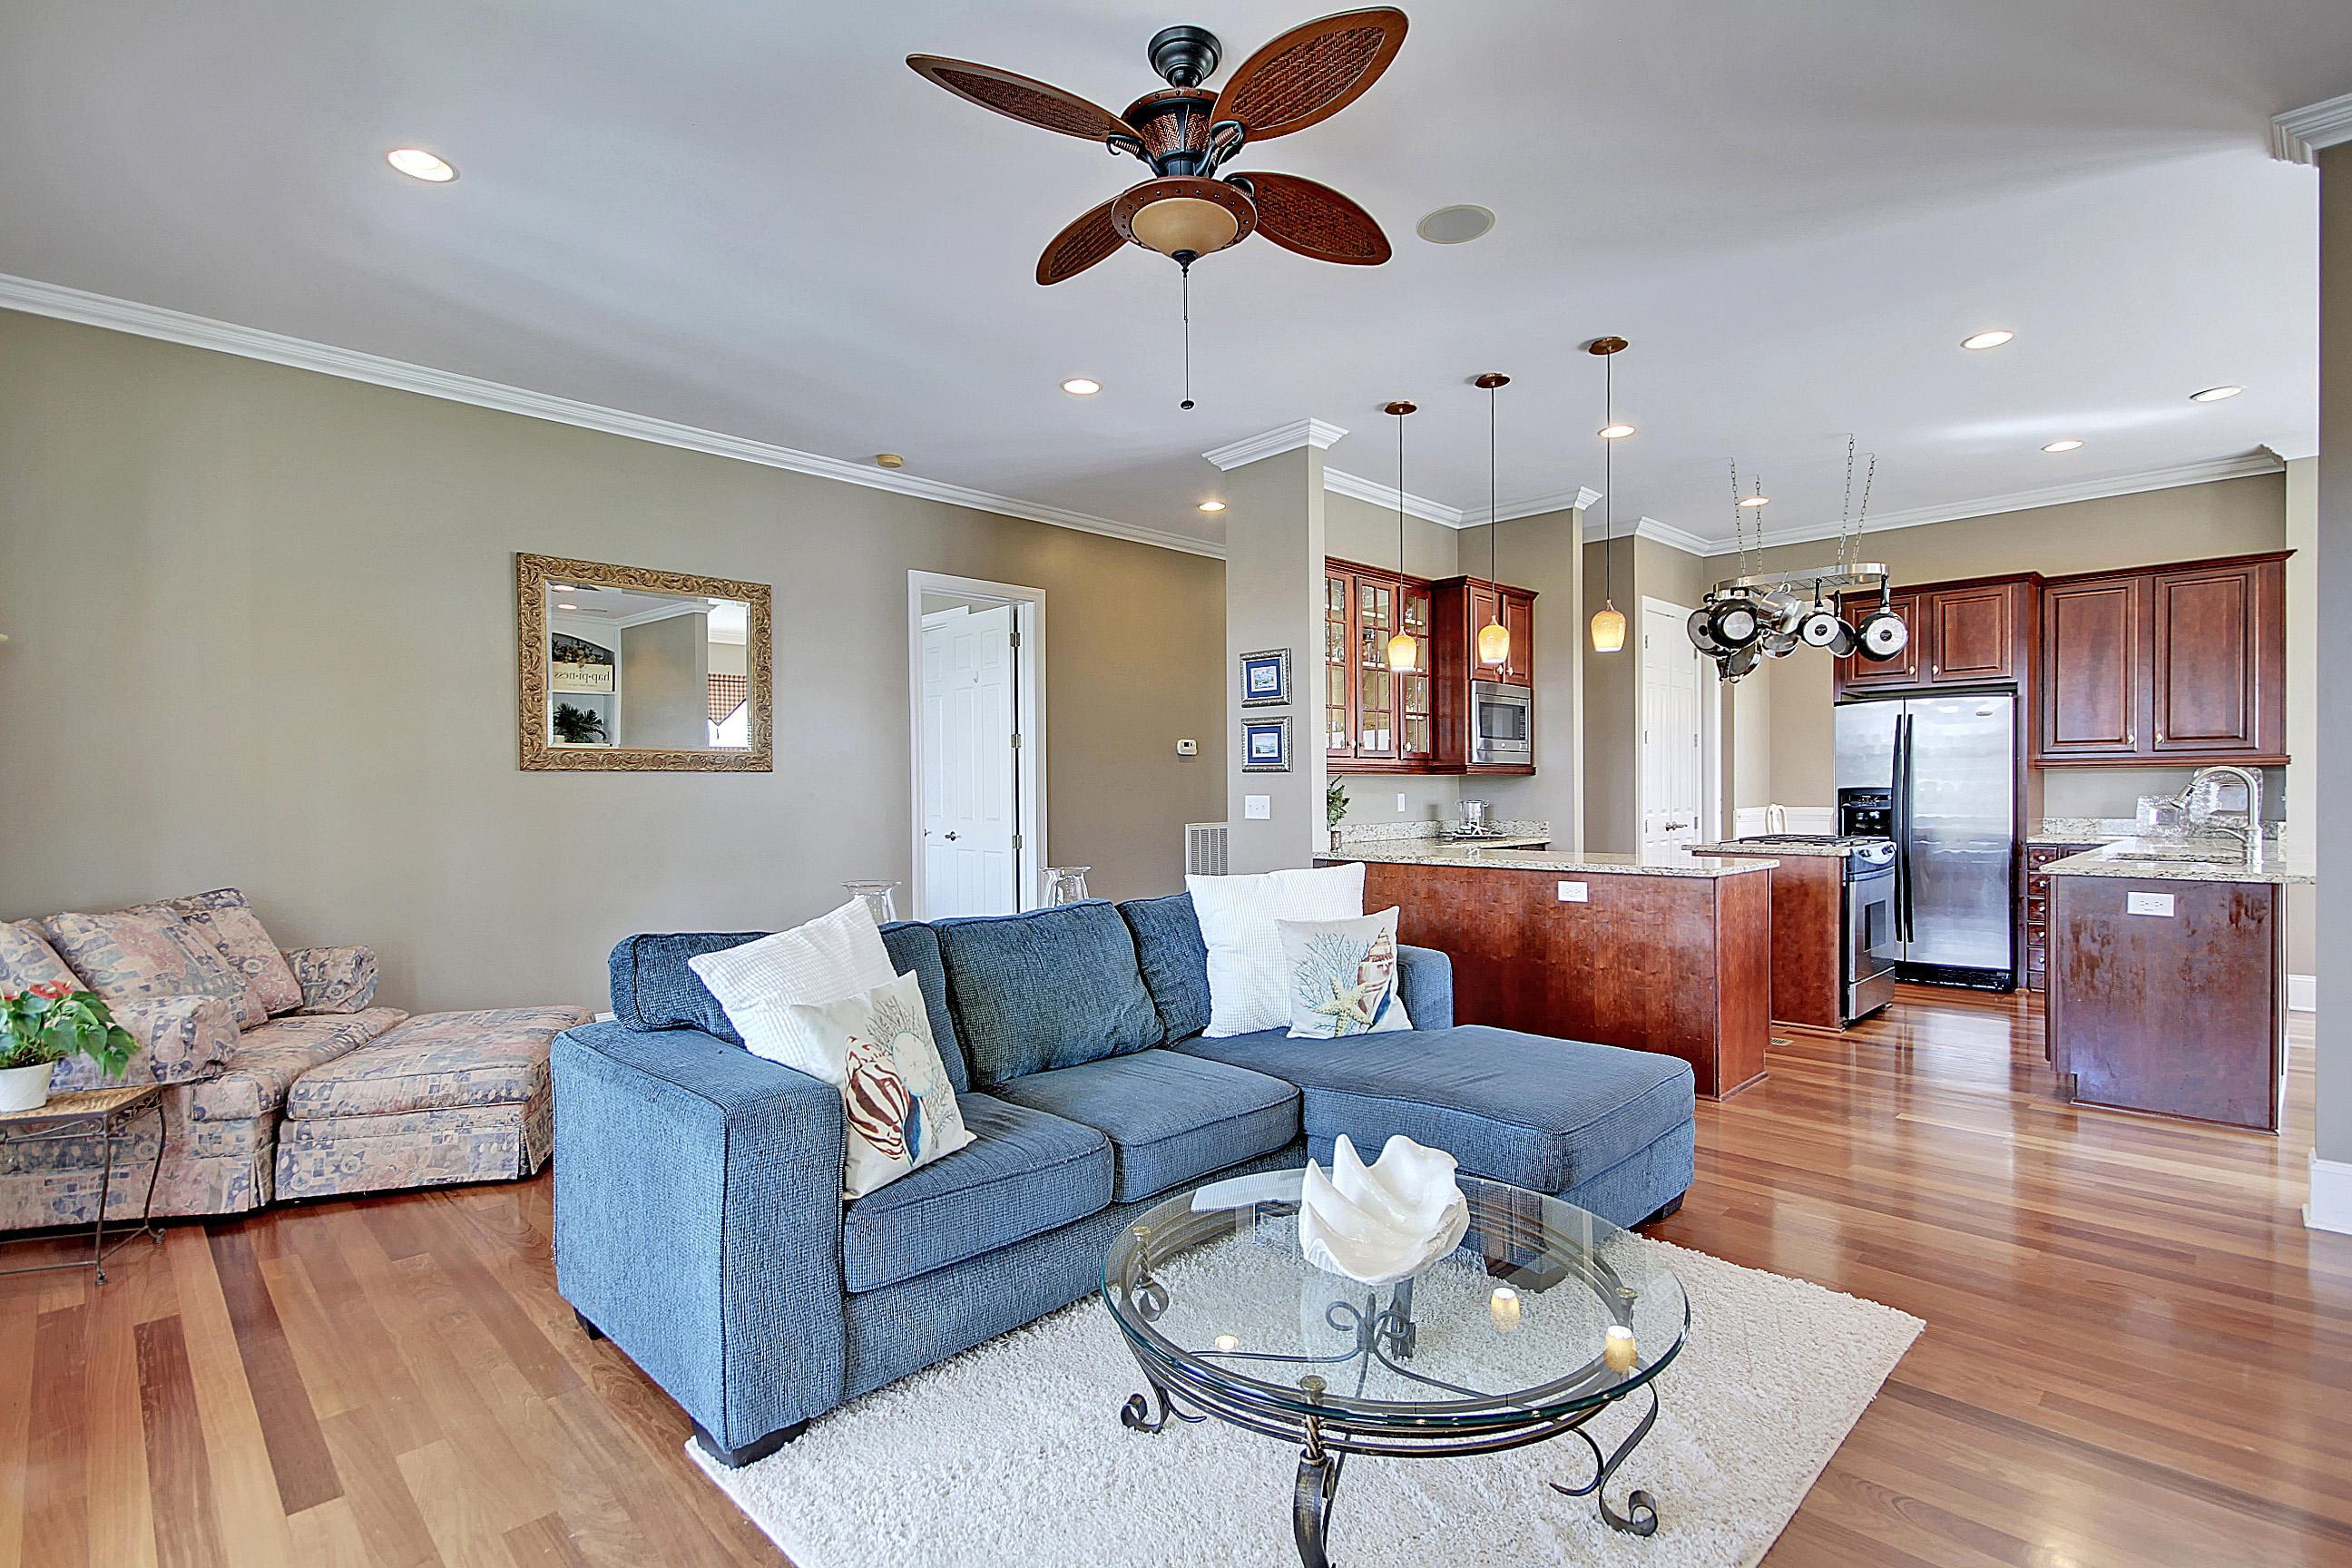 Rivertowne Country Club Homes For Sale - 1536 Rivertowne Country Club, Mount Pleasant, SC - 8